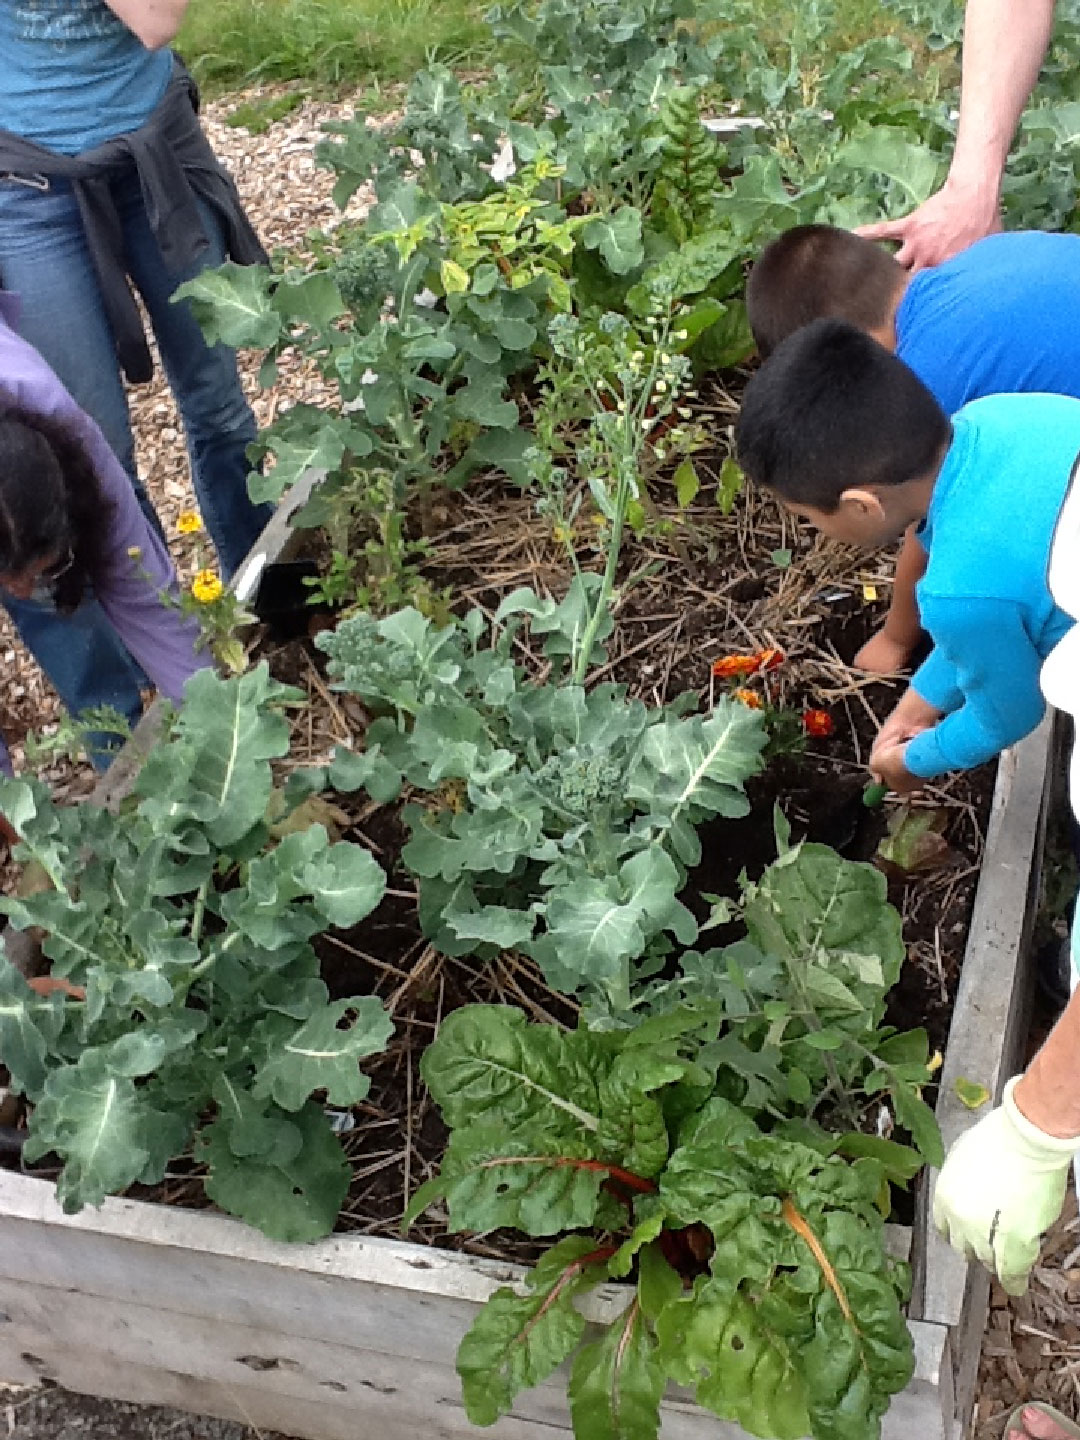 Integrating STEM and Sustainability through Learning Gardens